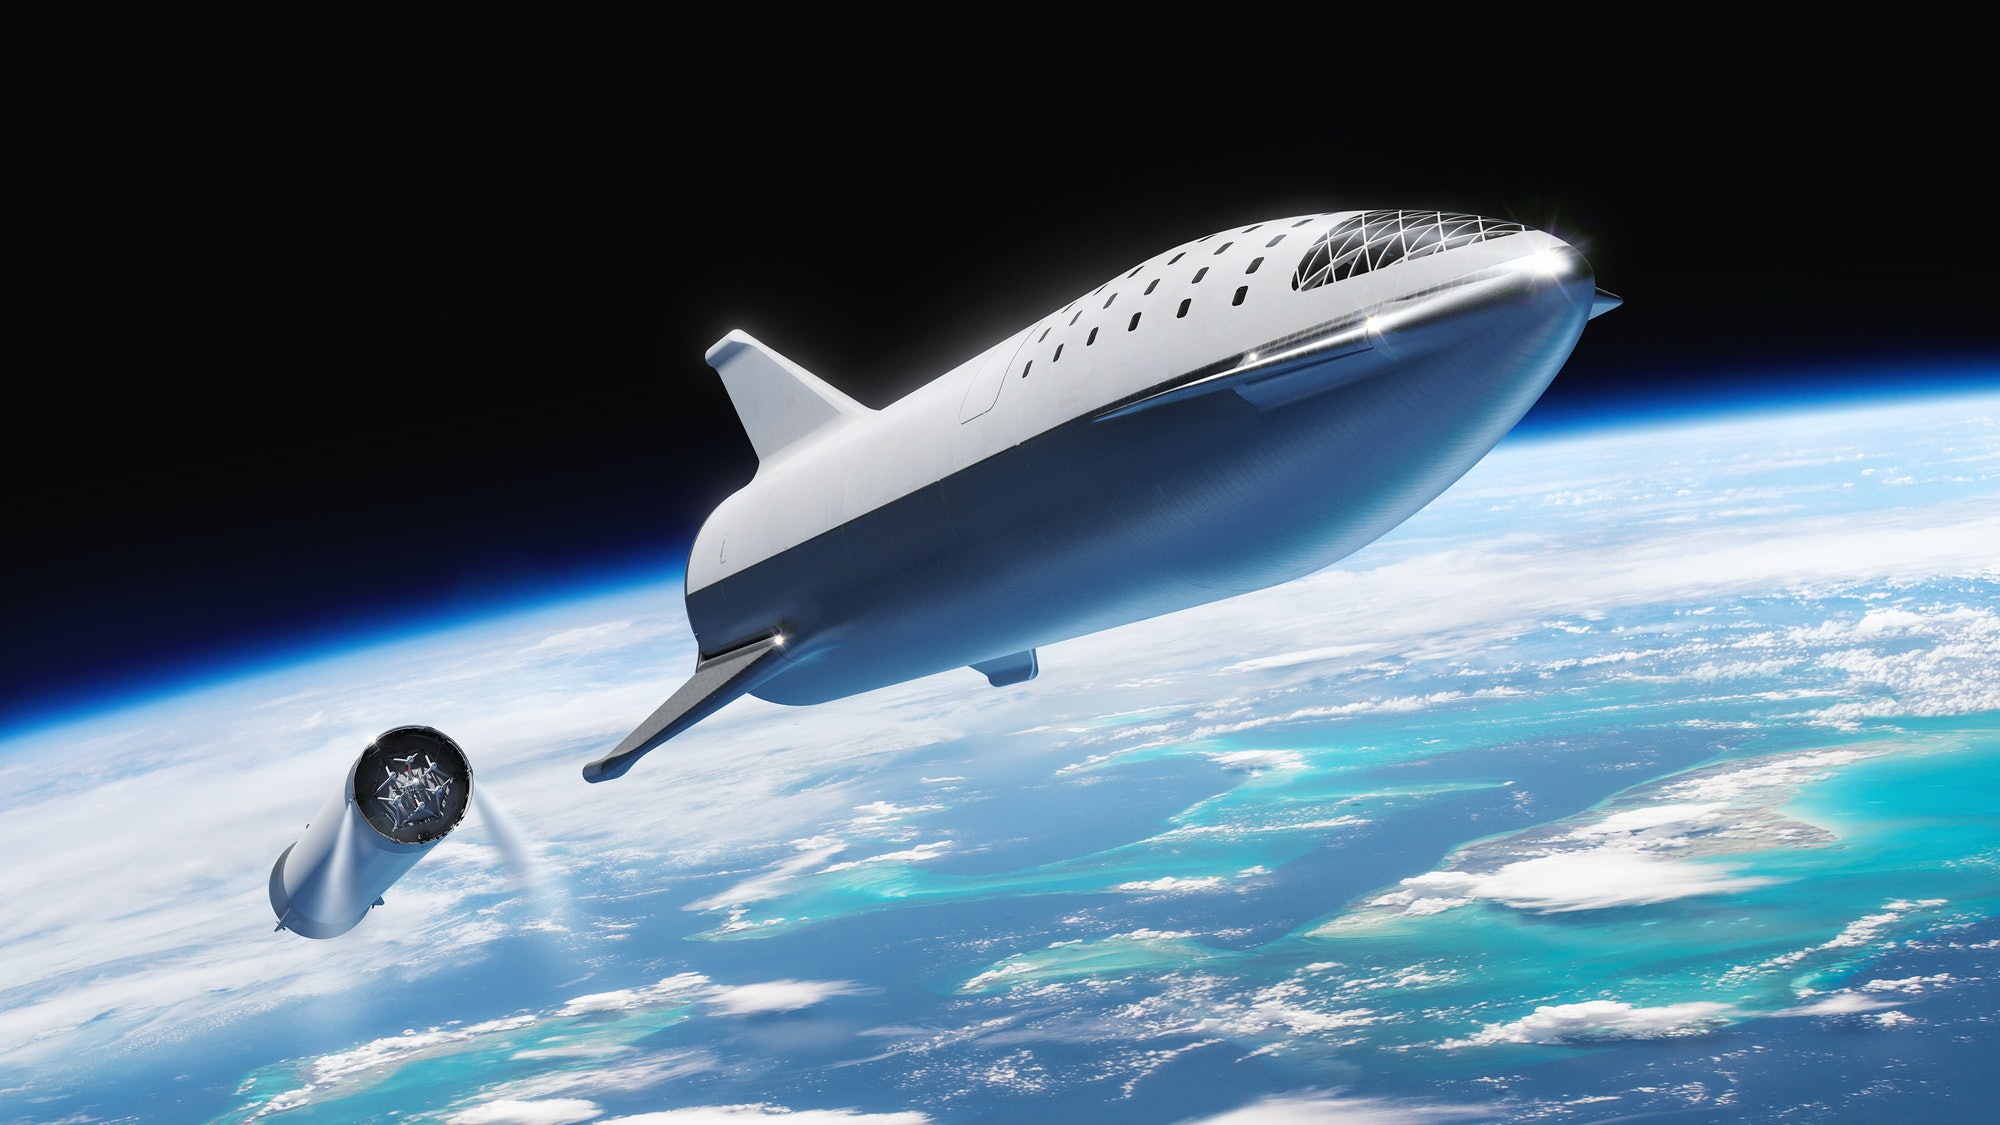 In this artist's image released by SpaceX in September 2018, the BFR -- now known as Starship -- separates from its first rocket stage above Earth. Tuesday marked the test flight of the Starhopper test article.